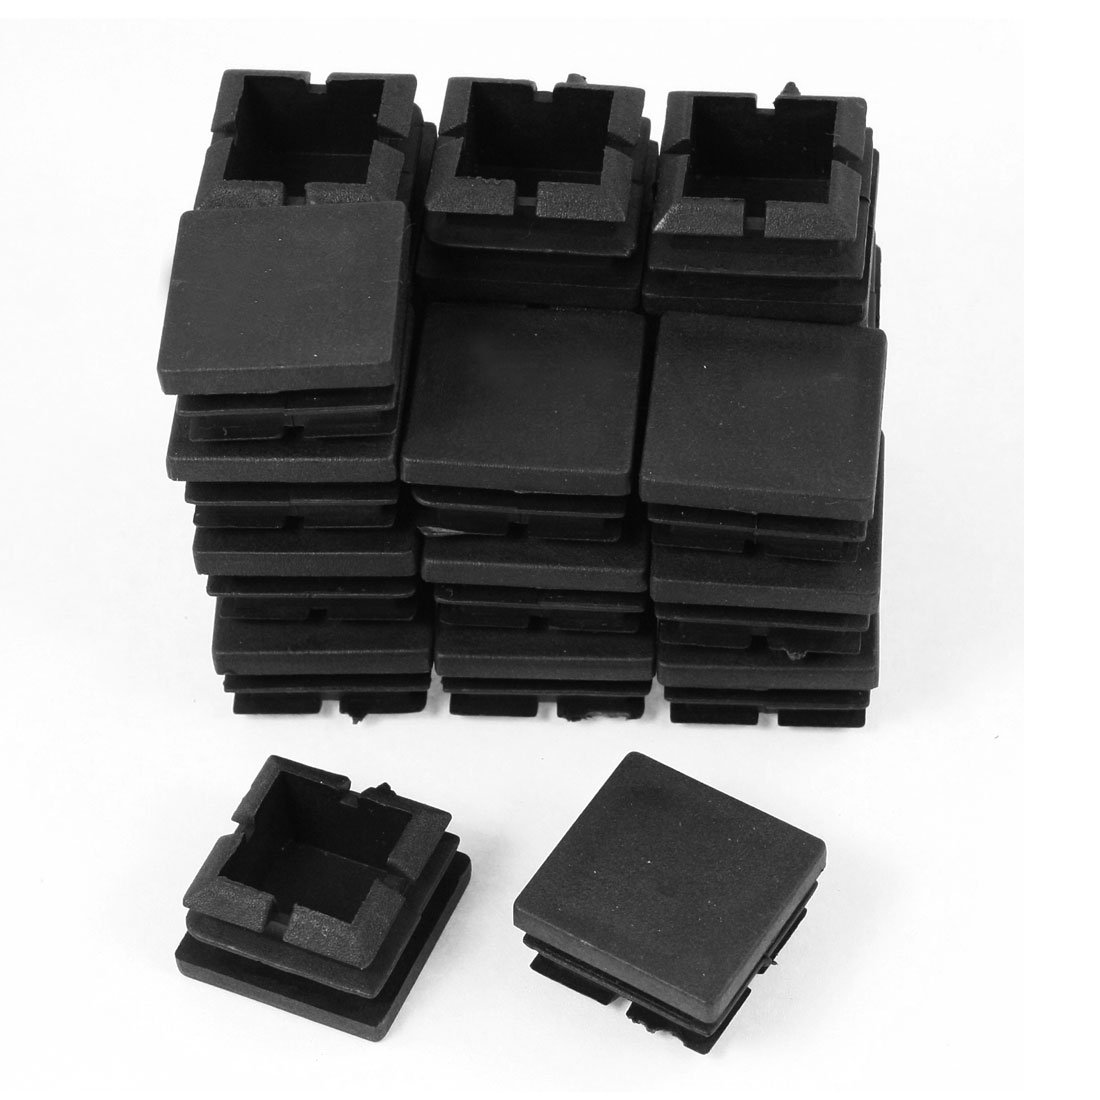 24 Pcs 25mm x 25mm Plastic Blanking End Caps Square Tube Insert Black a14091000ux0072